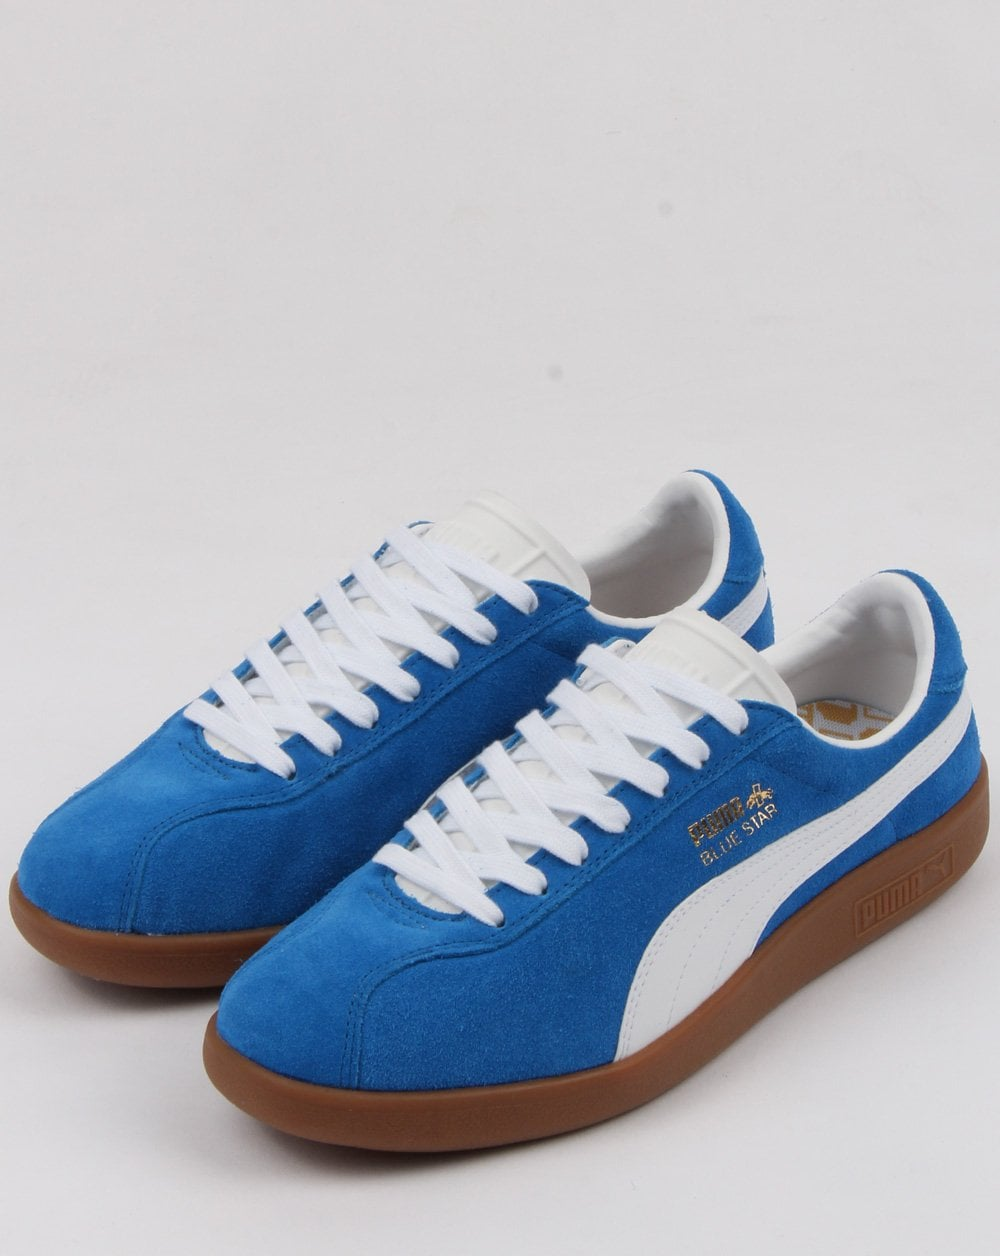 e7a4210c5d48 Puma Blue Star Trainer Royal Blue white